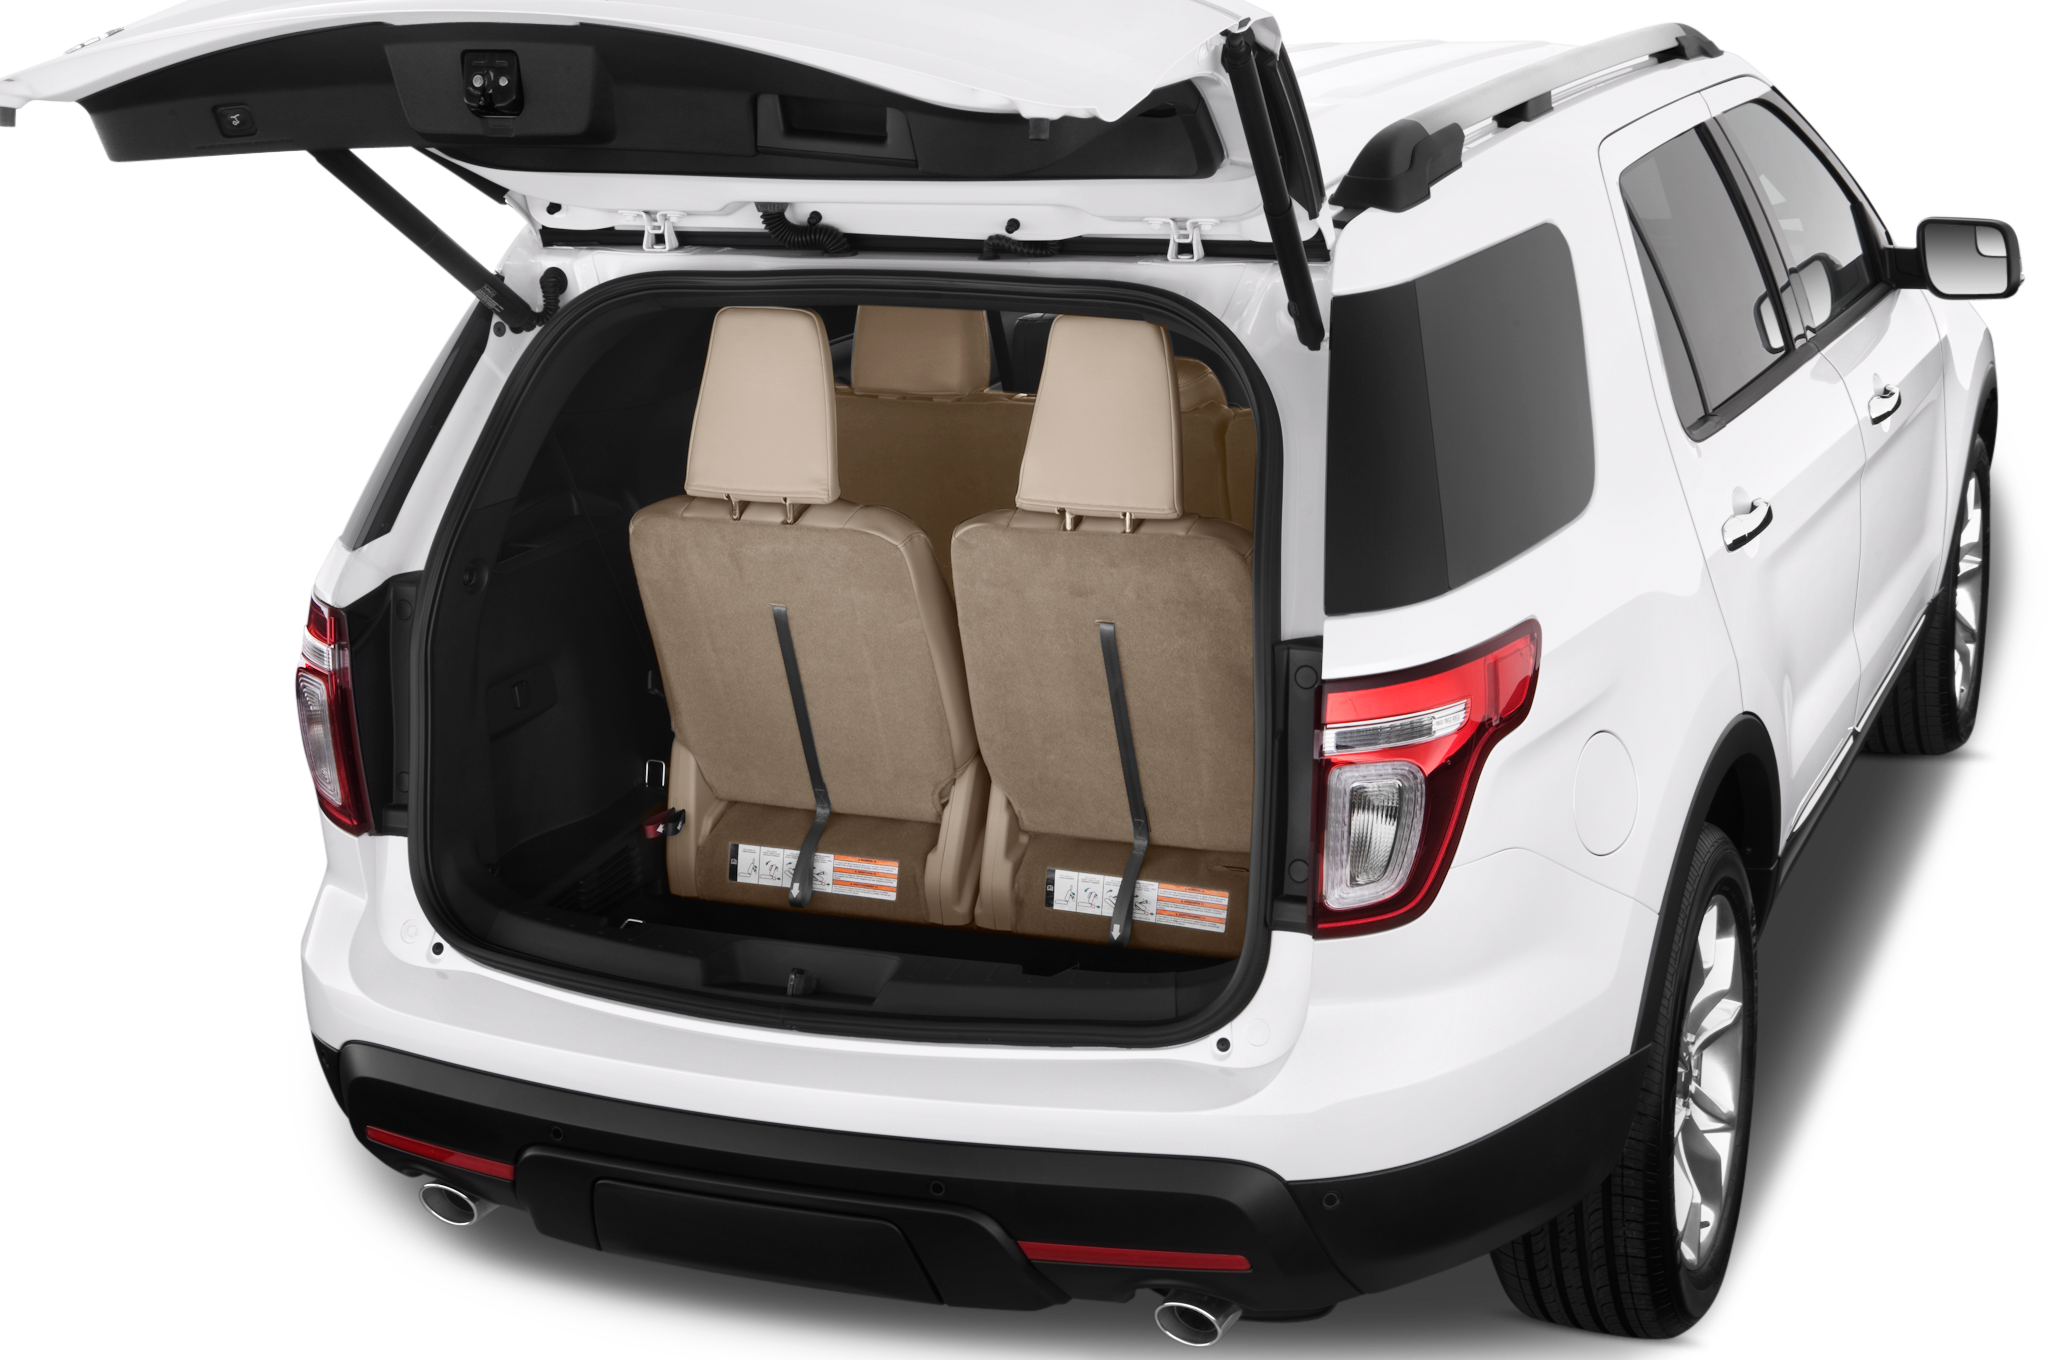 2017 Ford Expedition Cargo Volume Best New Cars For 2018